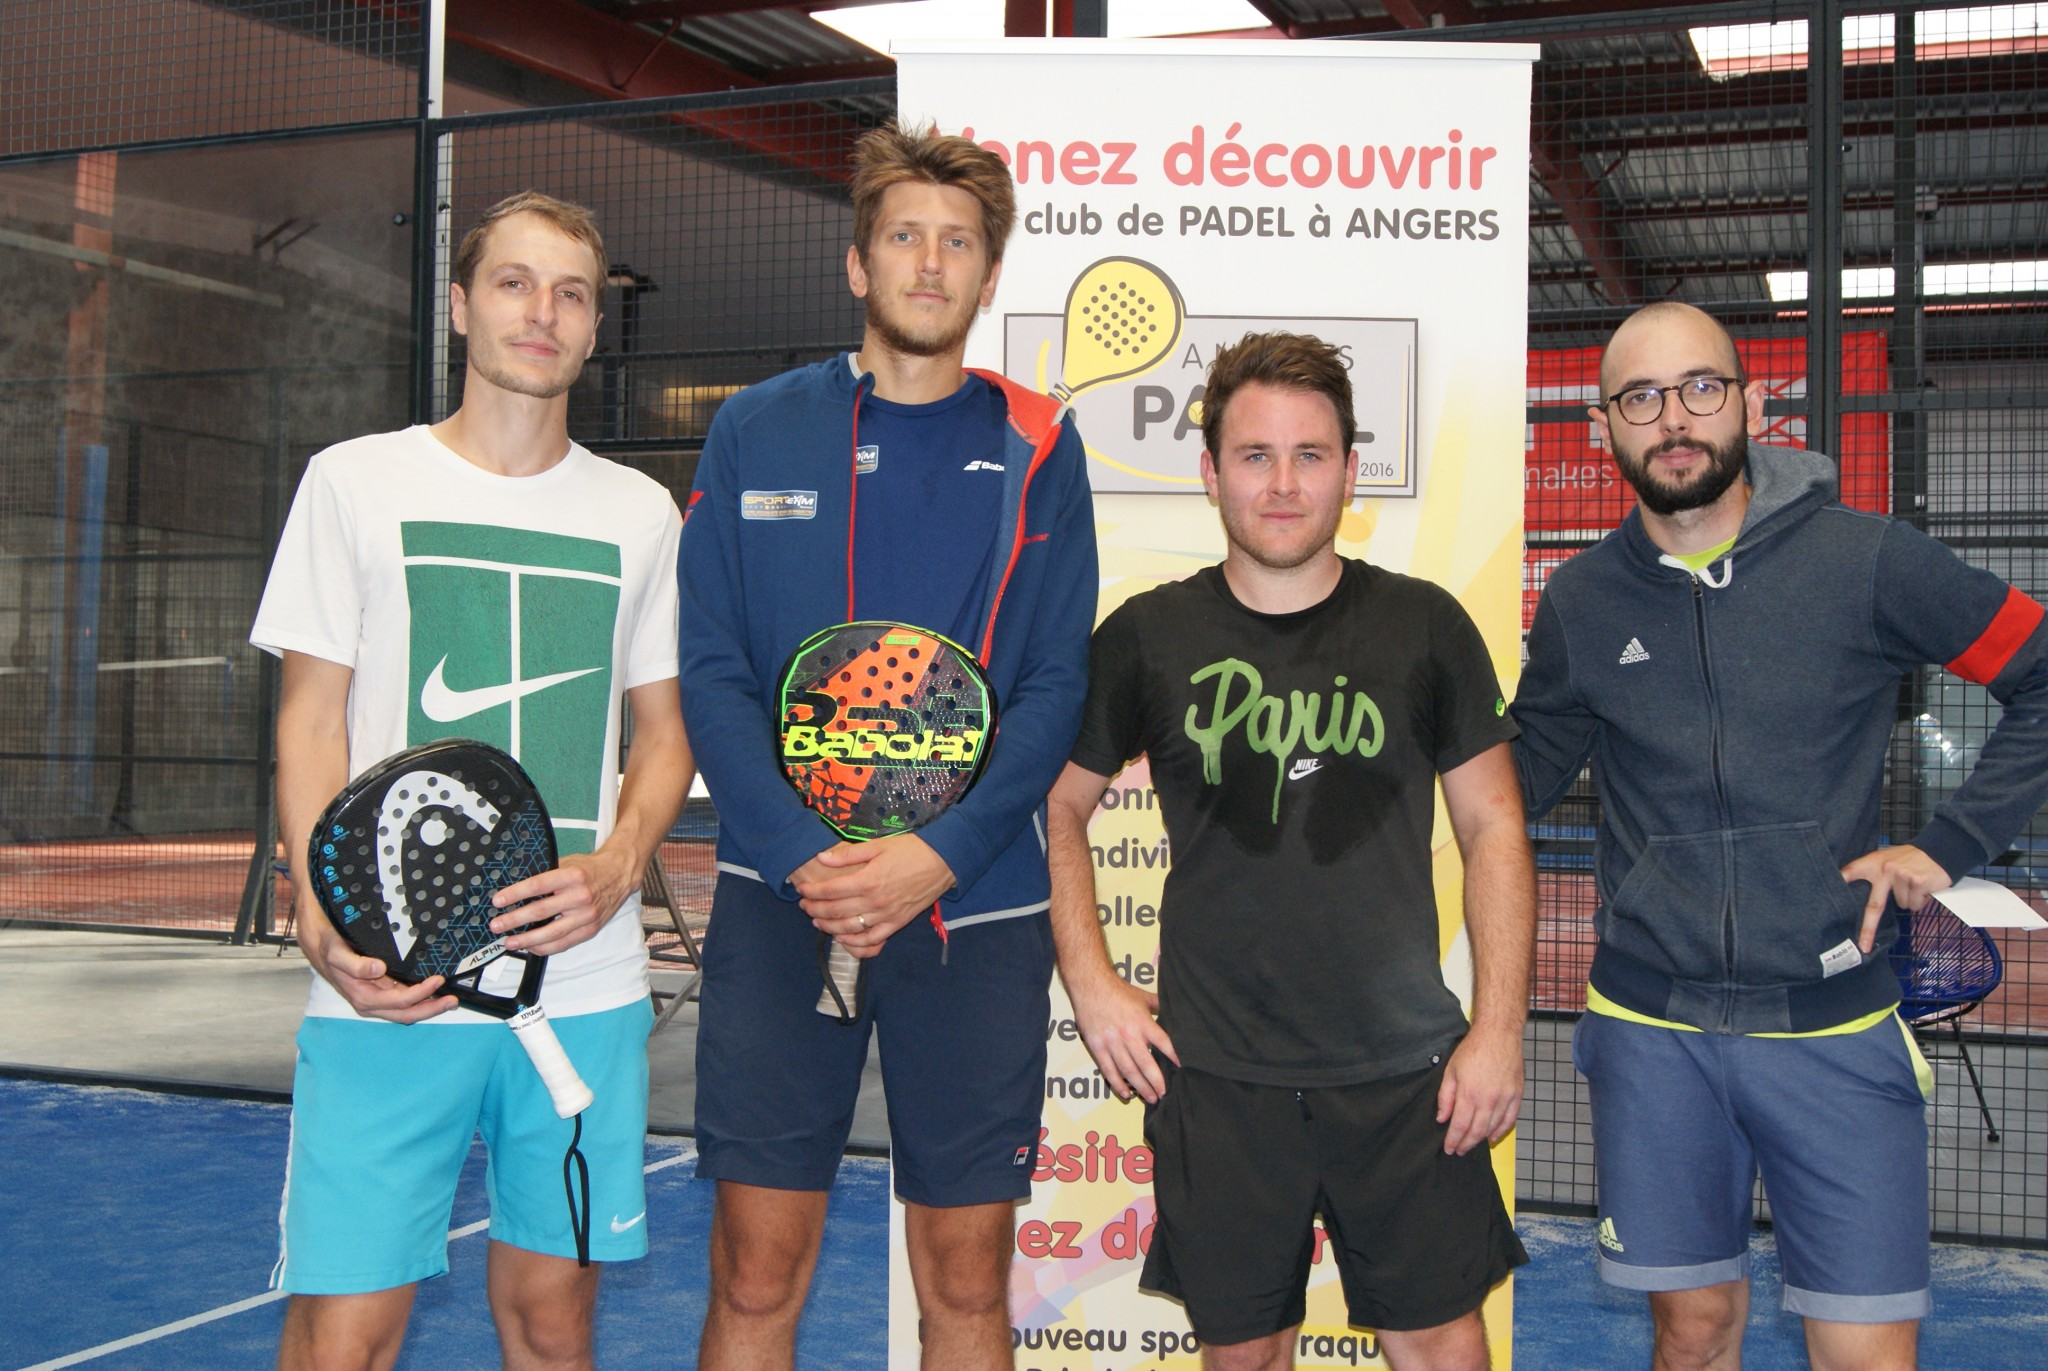 Veillon / Lighter vince ad Angers Padel